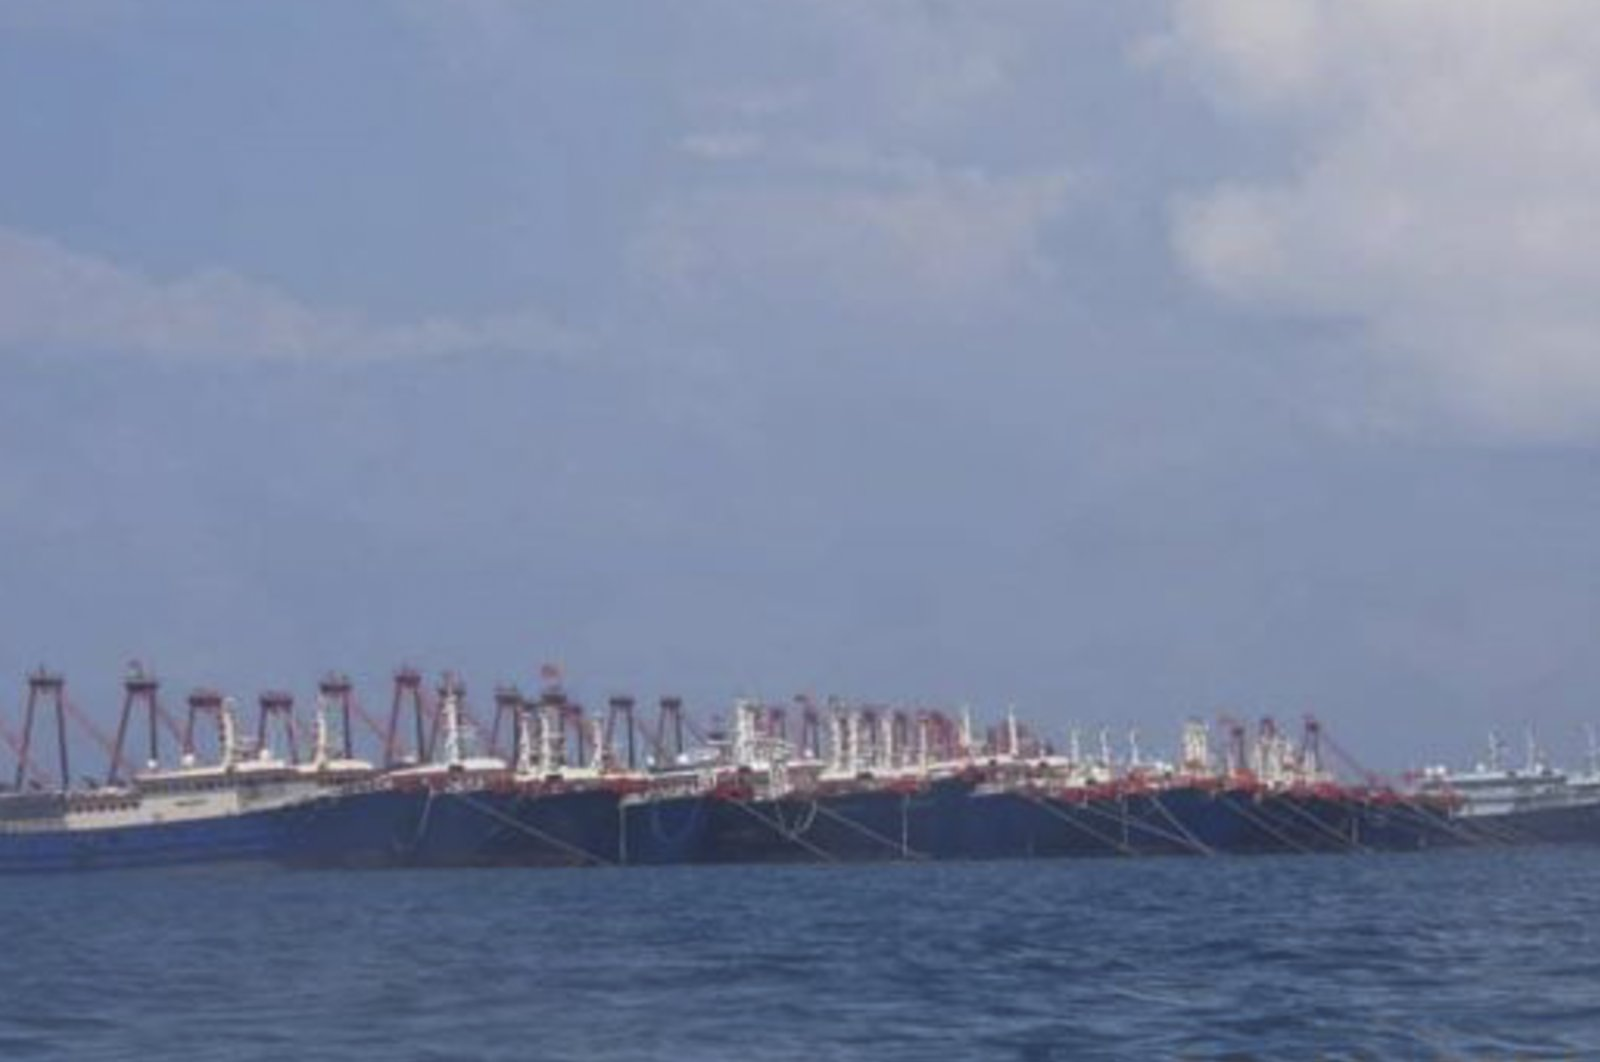 Some of the 220 Chinese vessels are seen moored at Whitsun Reef, South China Sea, March 7, 2021. (AP Photo)